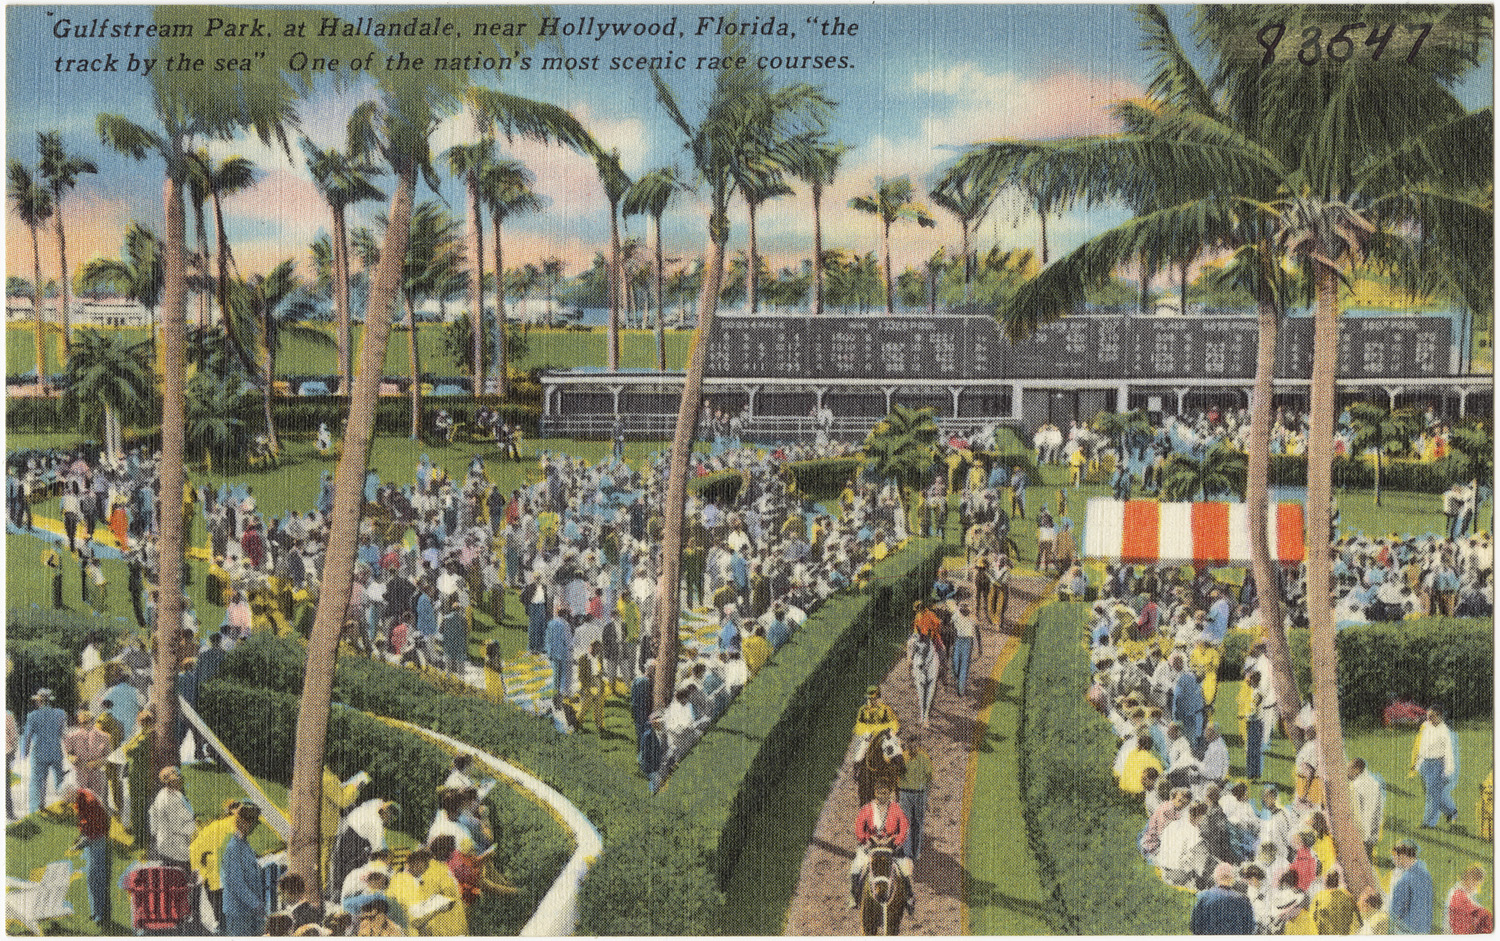 Gulfstream Park Miami Restaurants